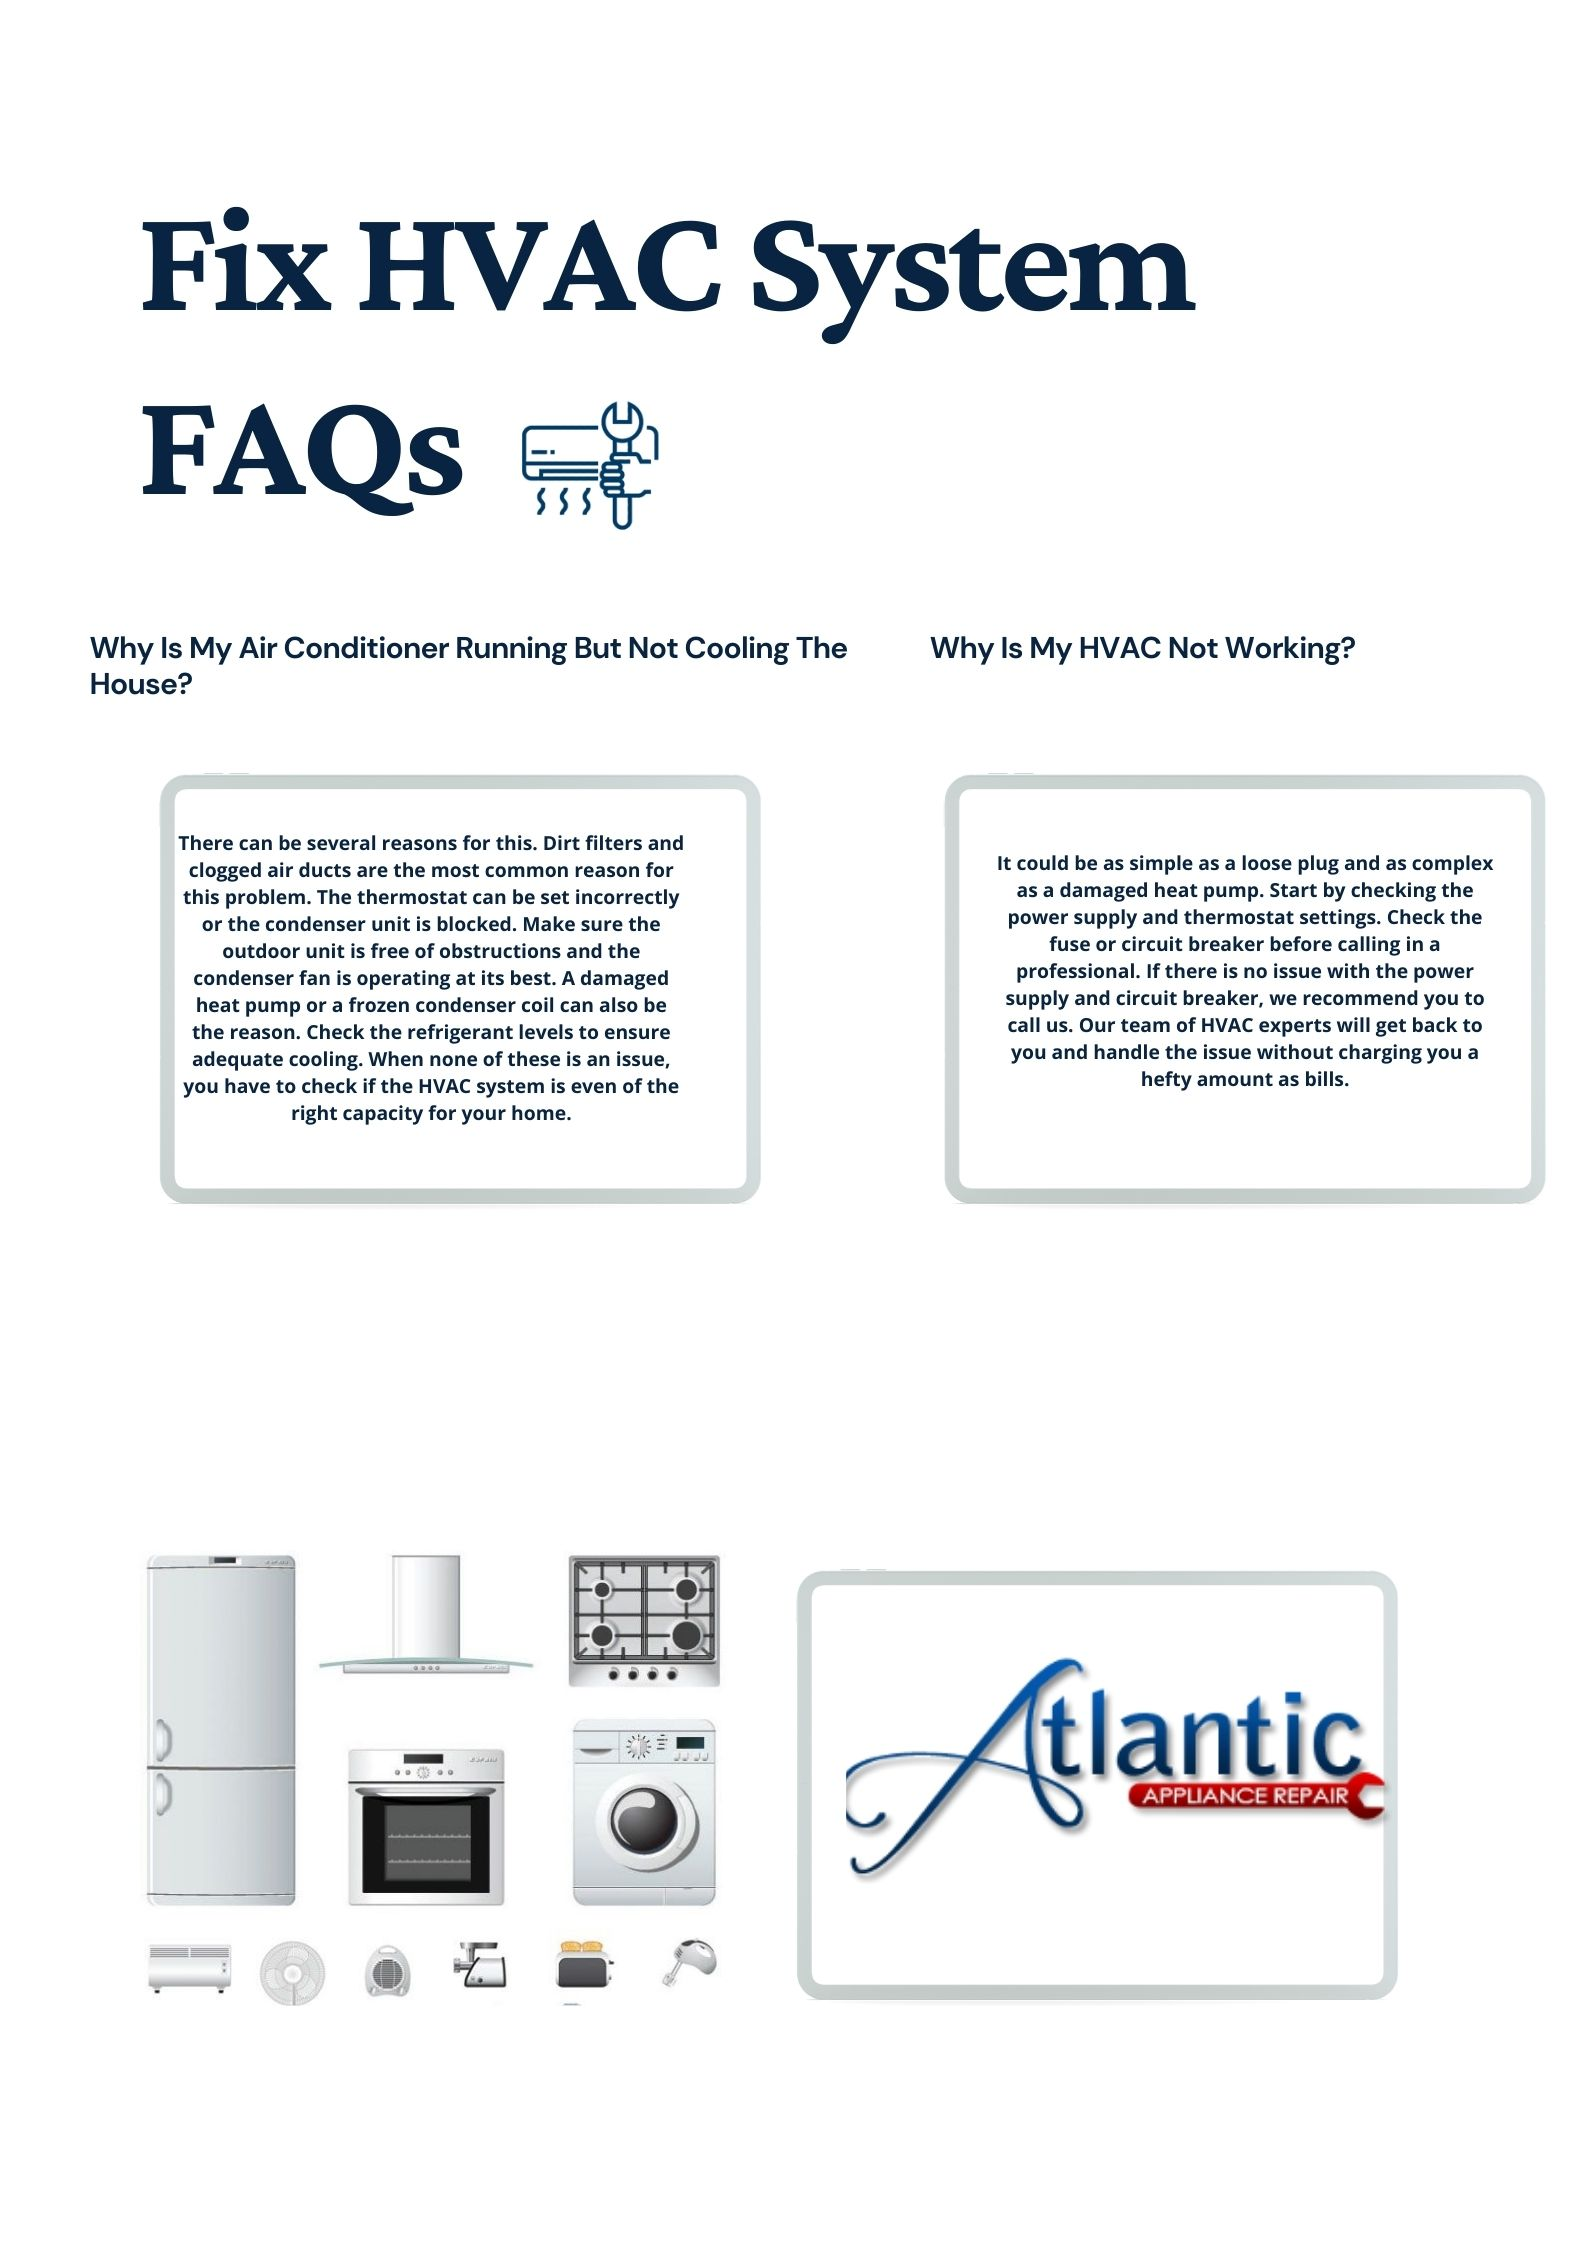 HVAC questions and answers